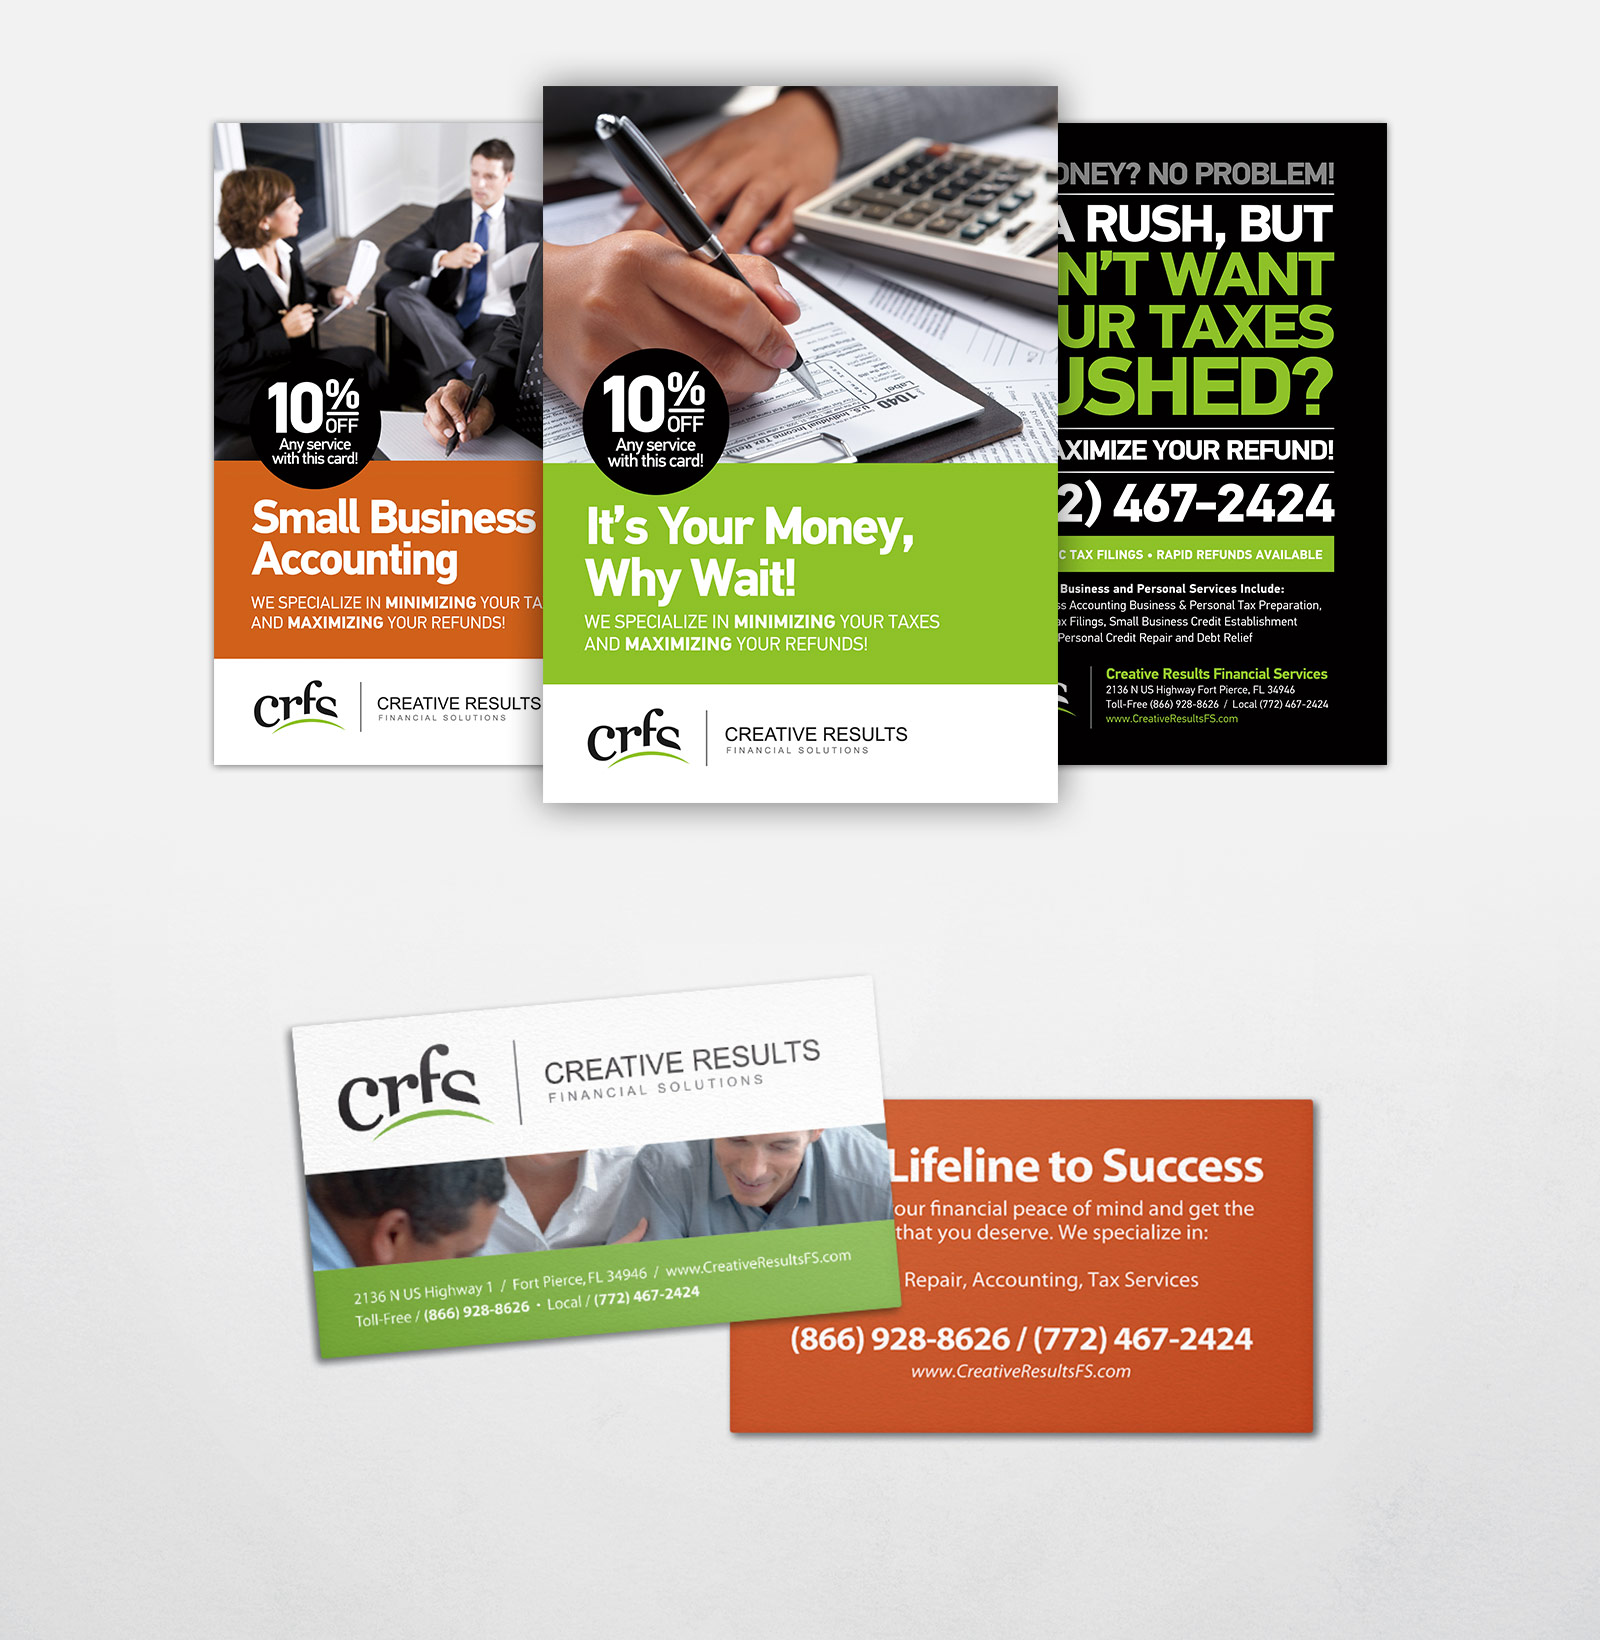 Creative Results Financial Services